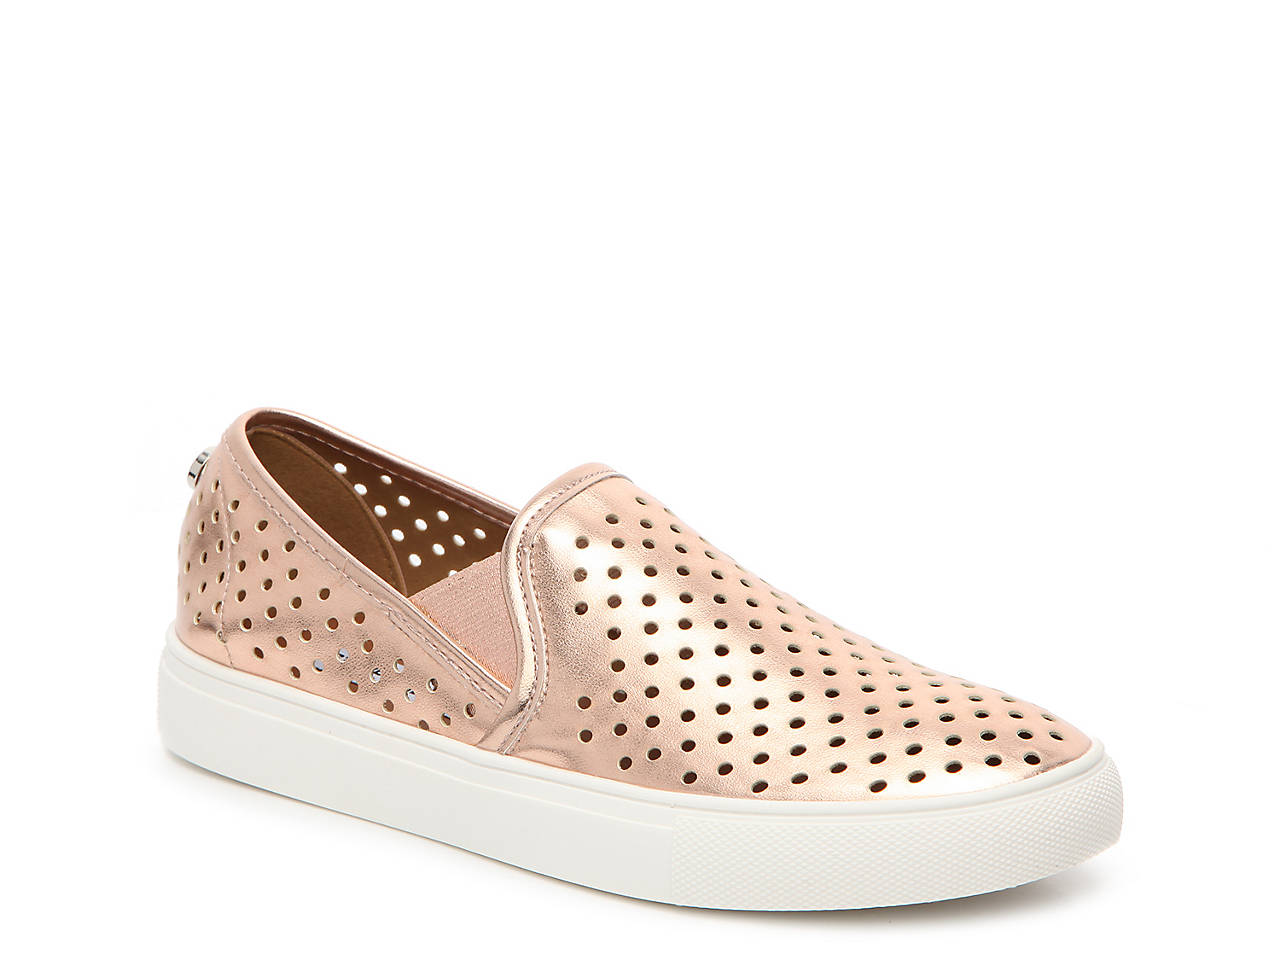 e5eadbb1c0c Steve Madden Owen Slip-On Sneaker Women s Shoes